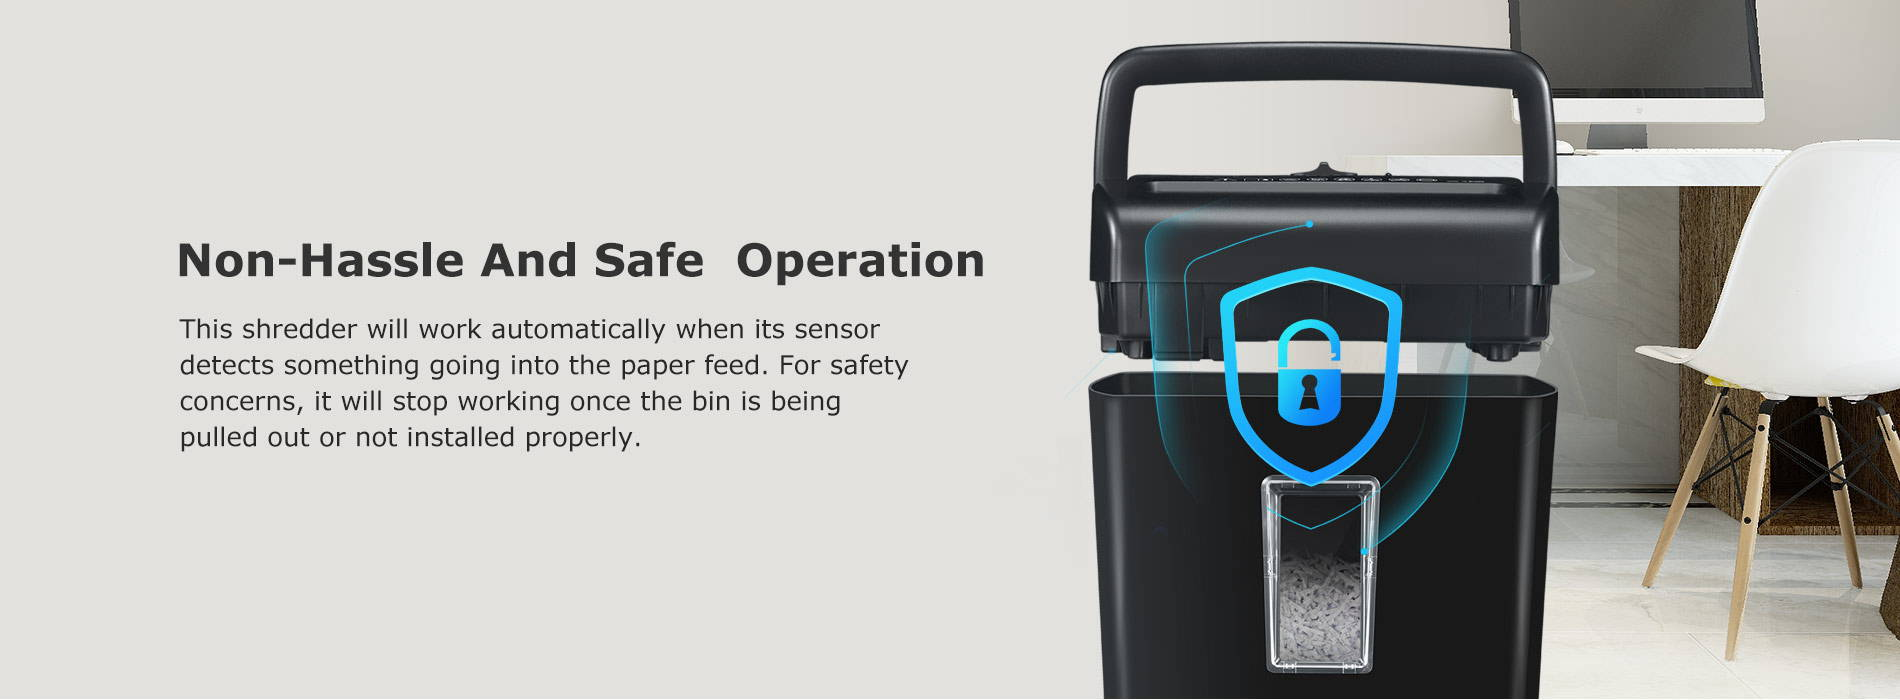 Non-Hassle And Safe  Operation This shredder will work automatically when its sensor detects something going into the paper feed. For safety concerns, it will stop working once the bin is being pulled out or not installed properly.